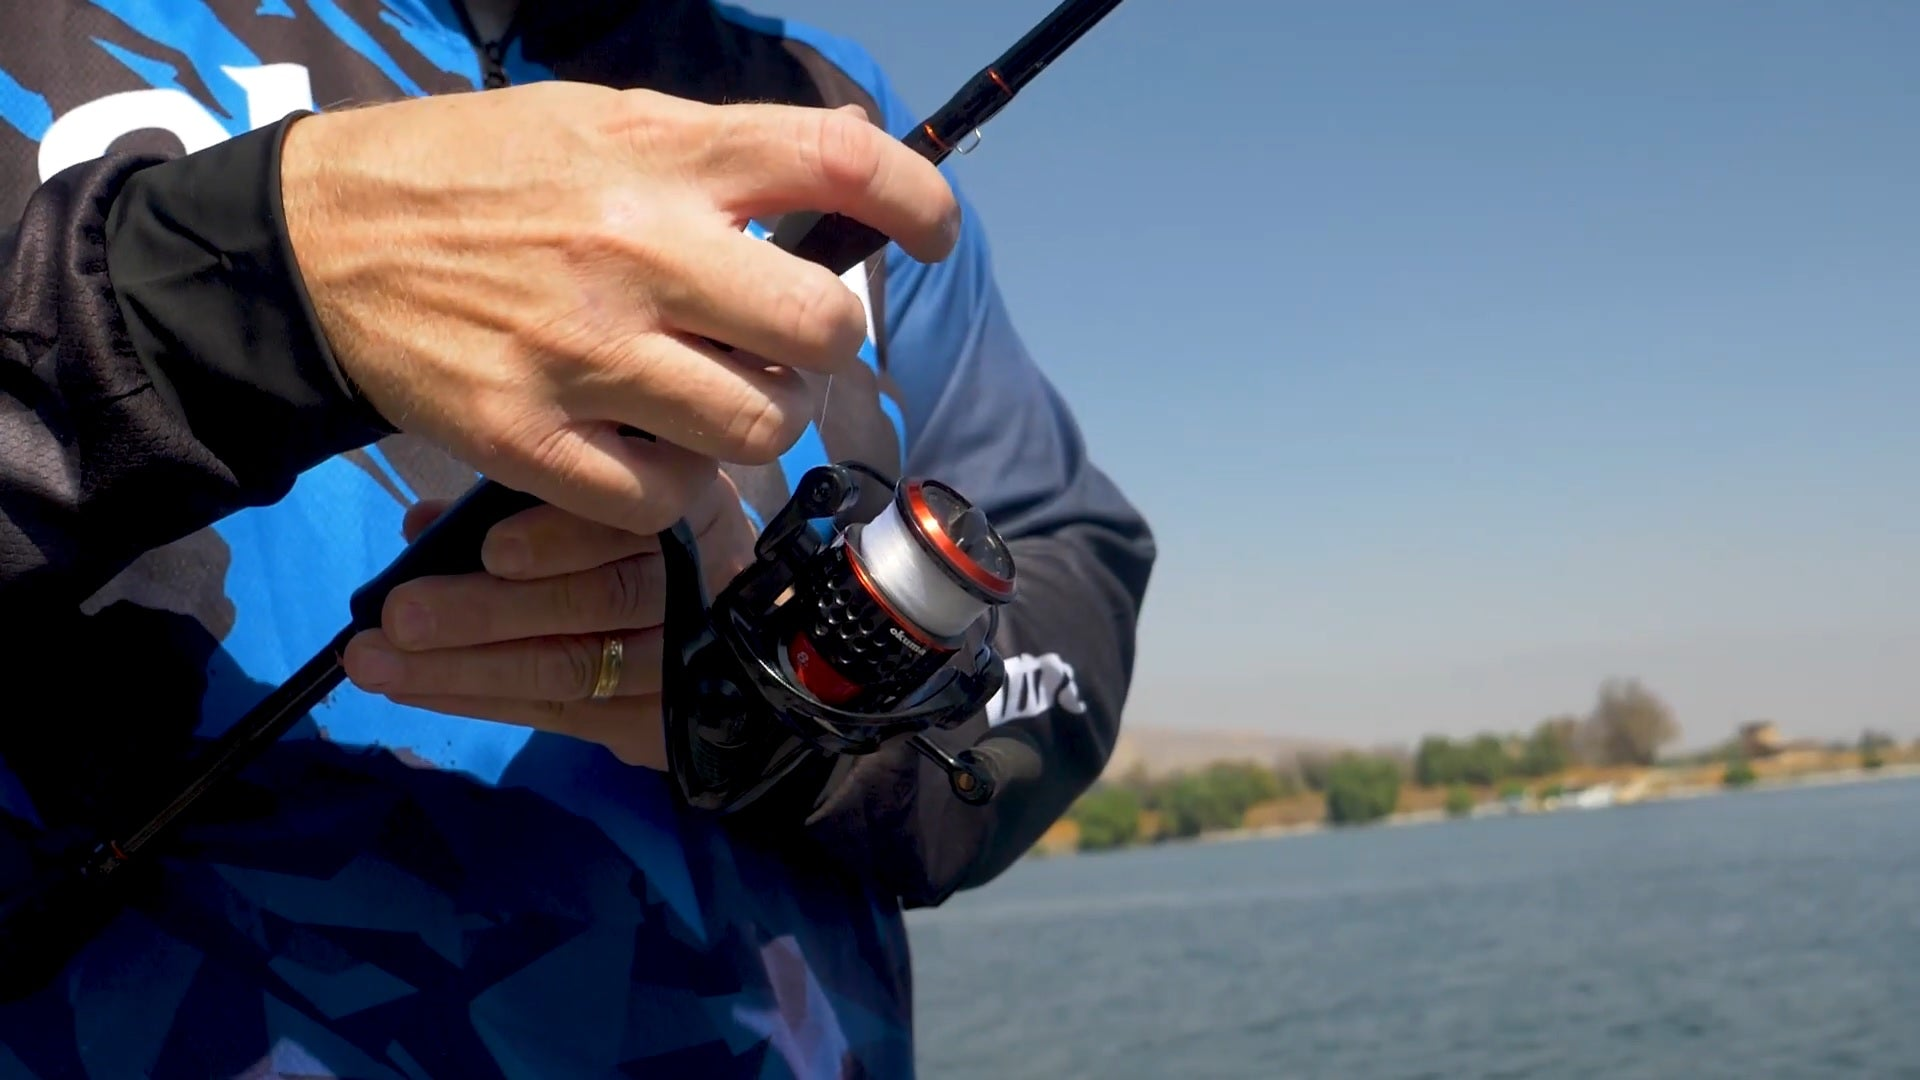 Tune-Up Tuesday: How to Cast with a Spinning Reel